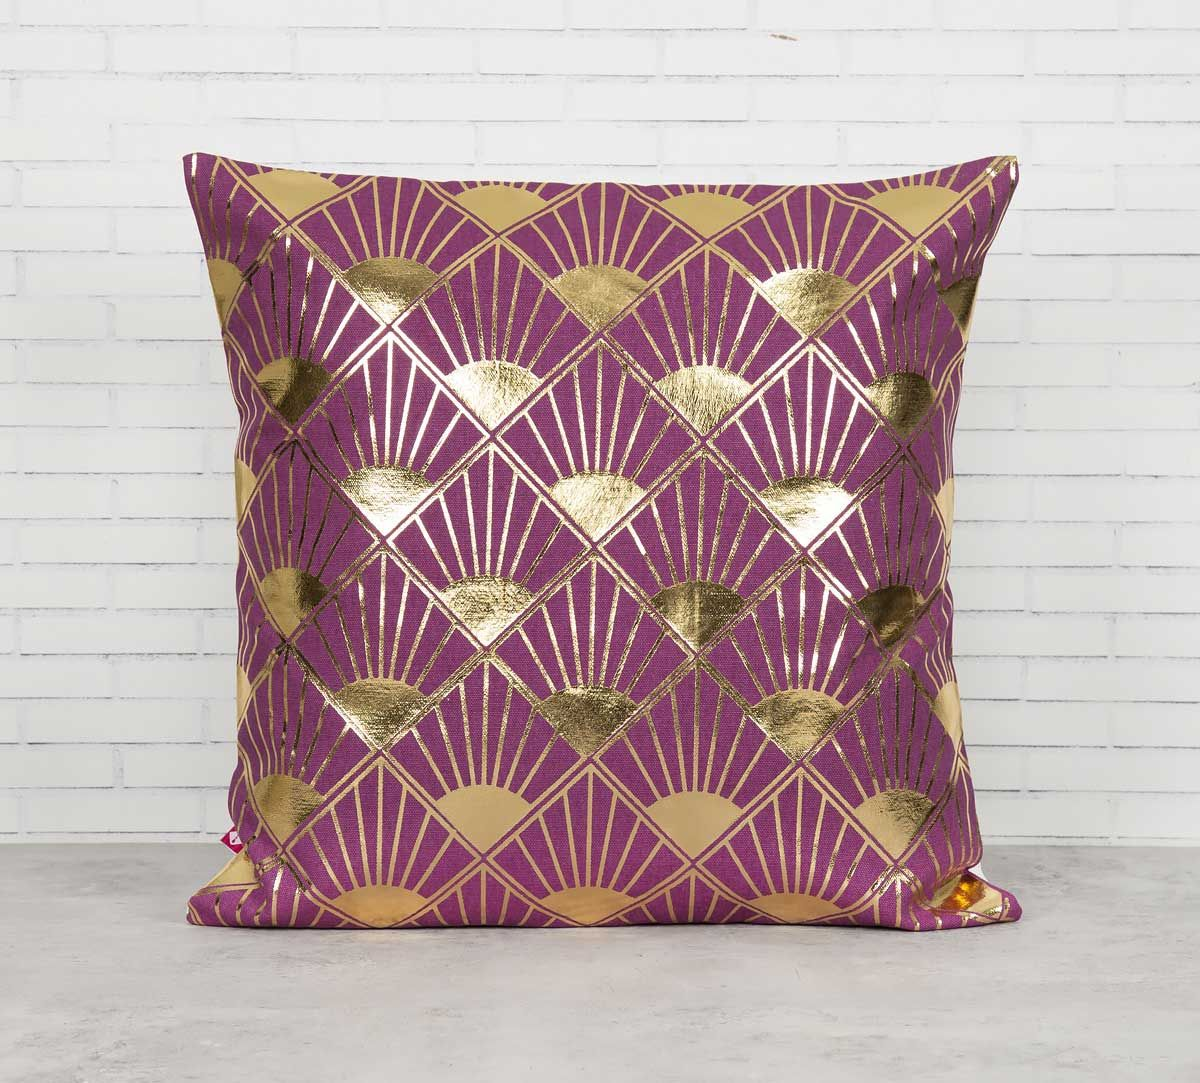 India Circus Infinity Mirror Foil Cushion Cover